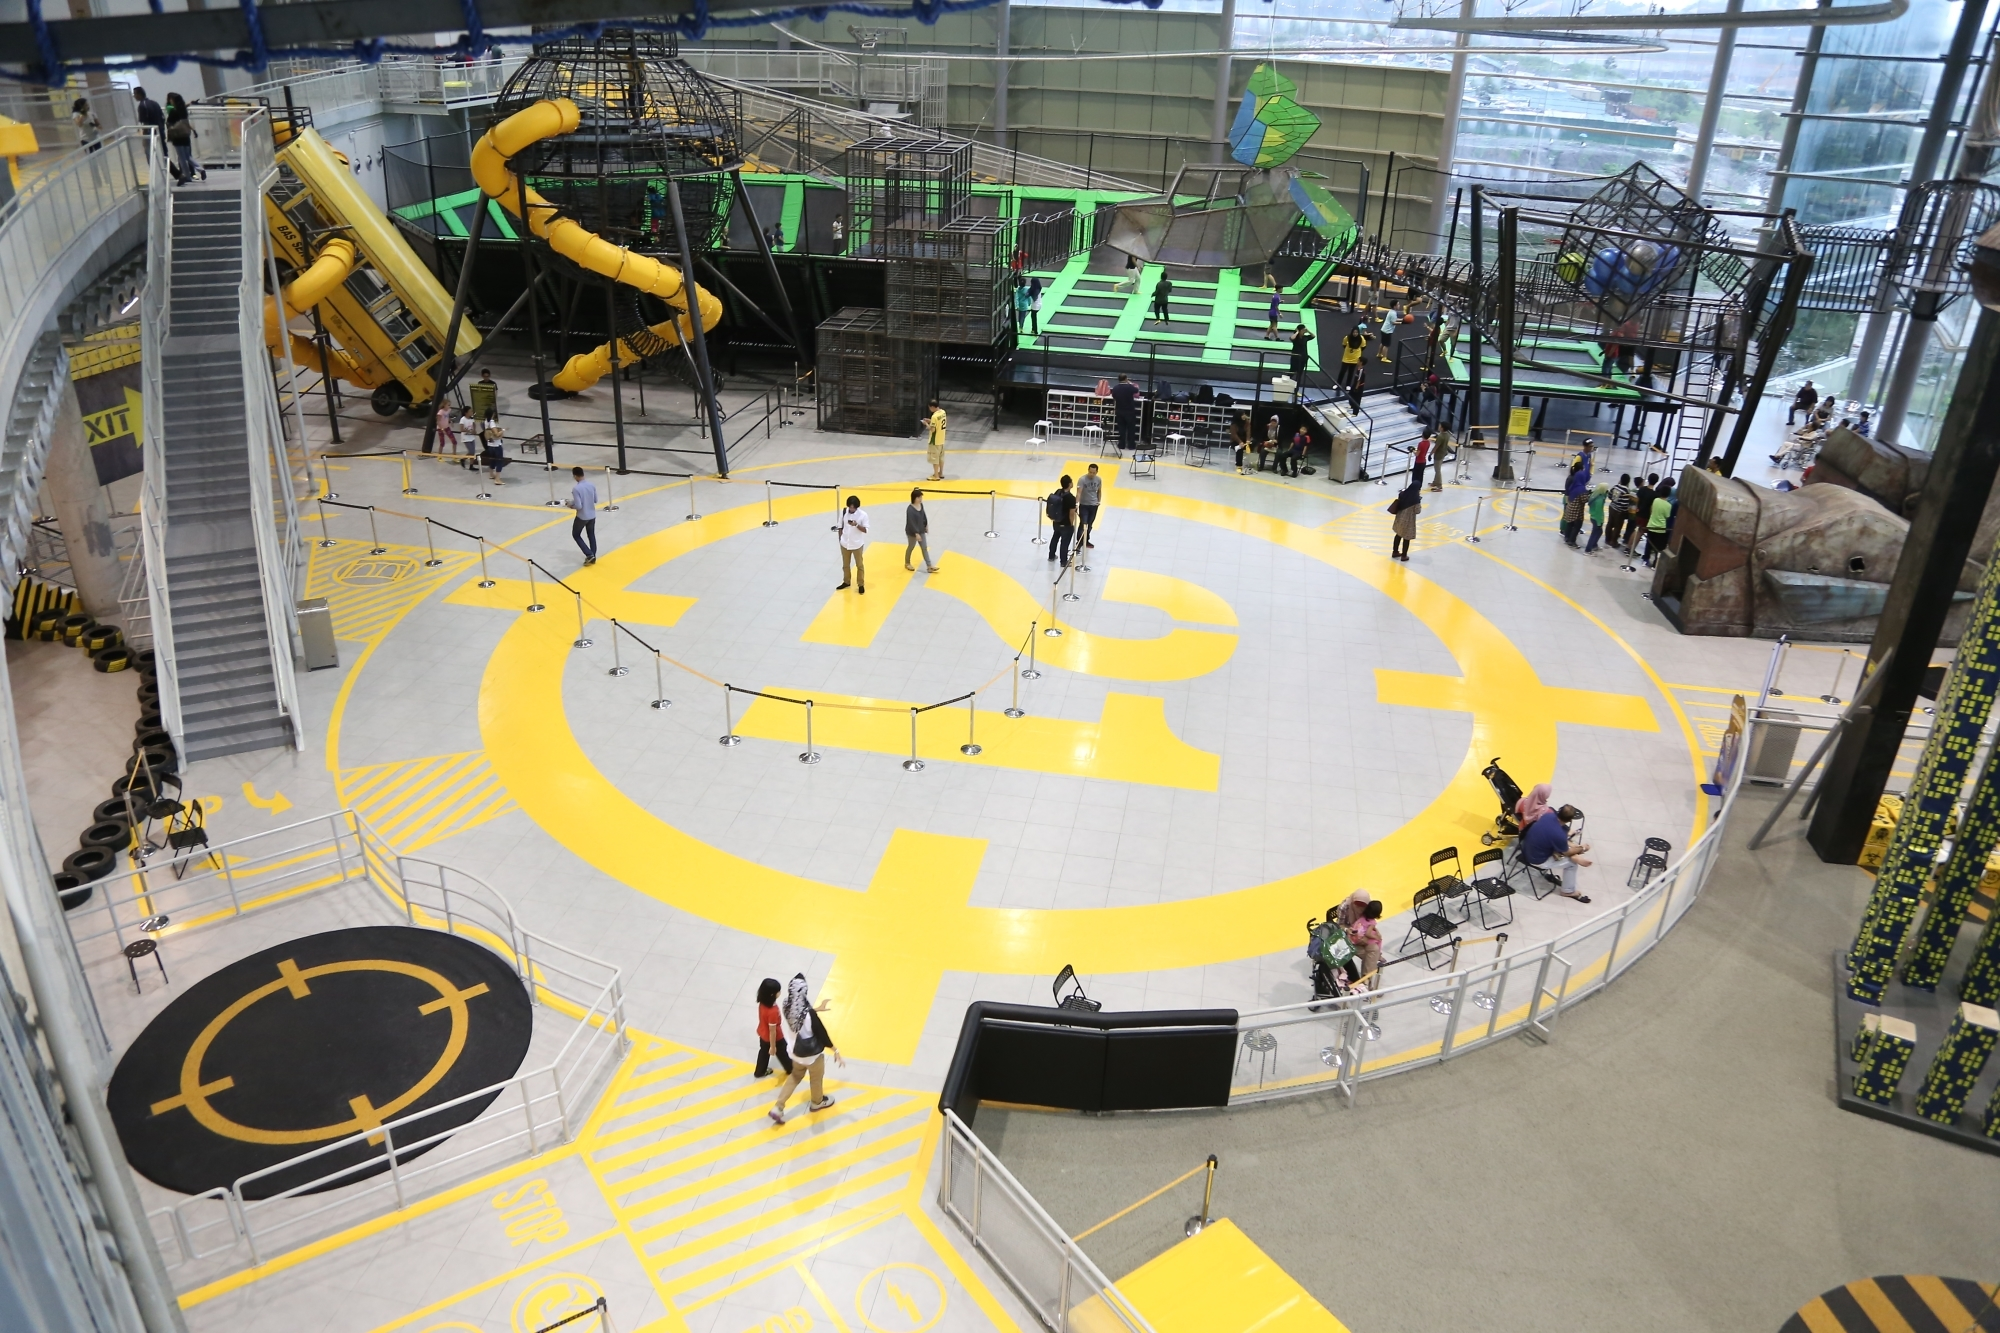 Participate in extreme indoor games at IOI City Mall